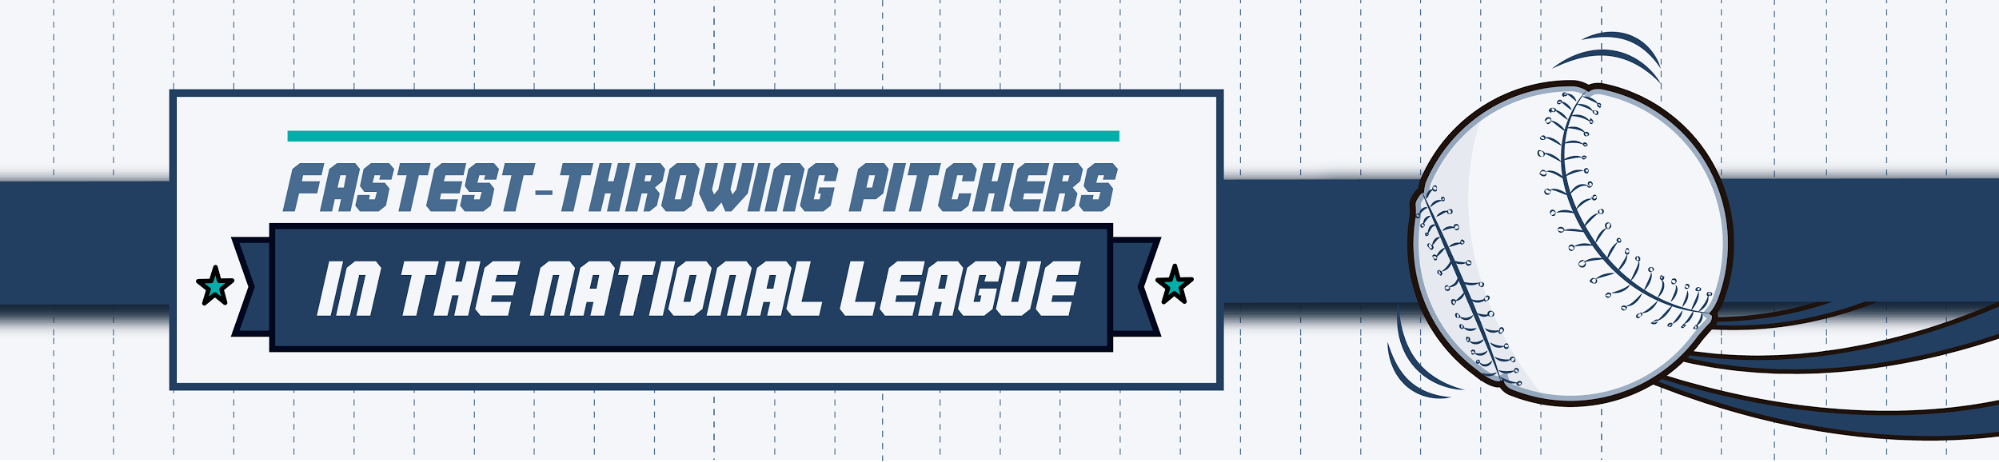 pitching-in-the-national-league